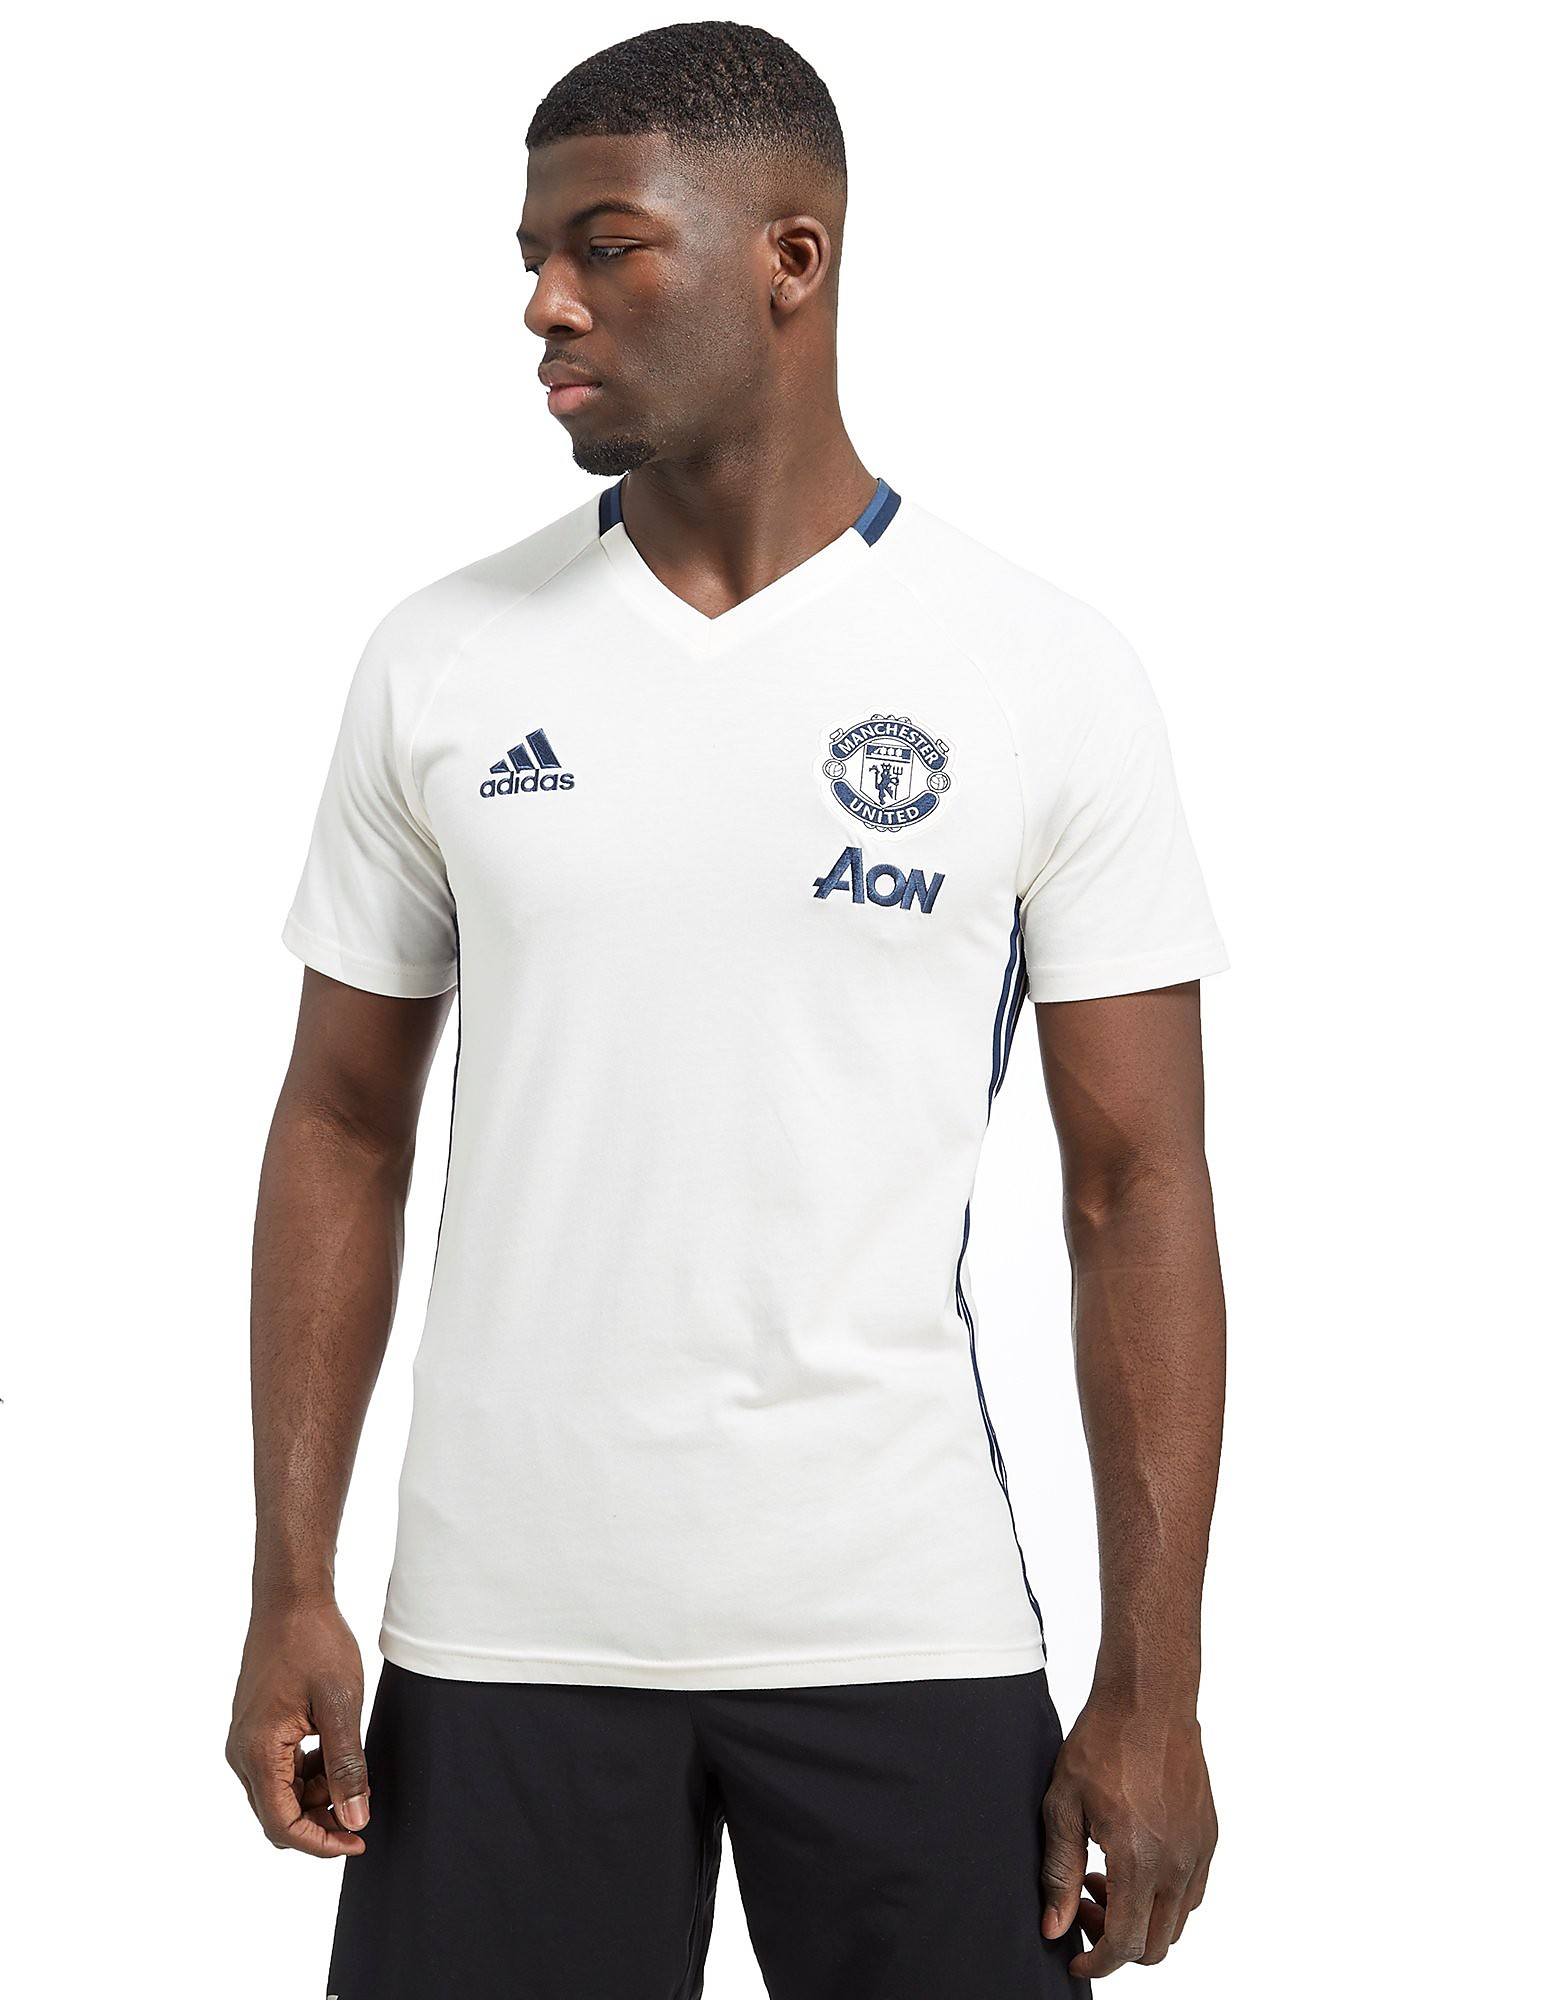 adidas Manchester United FC 2016/17 Training Shirt